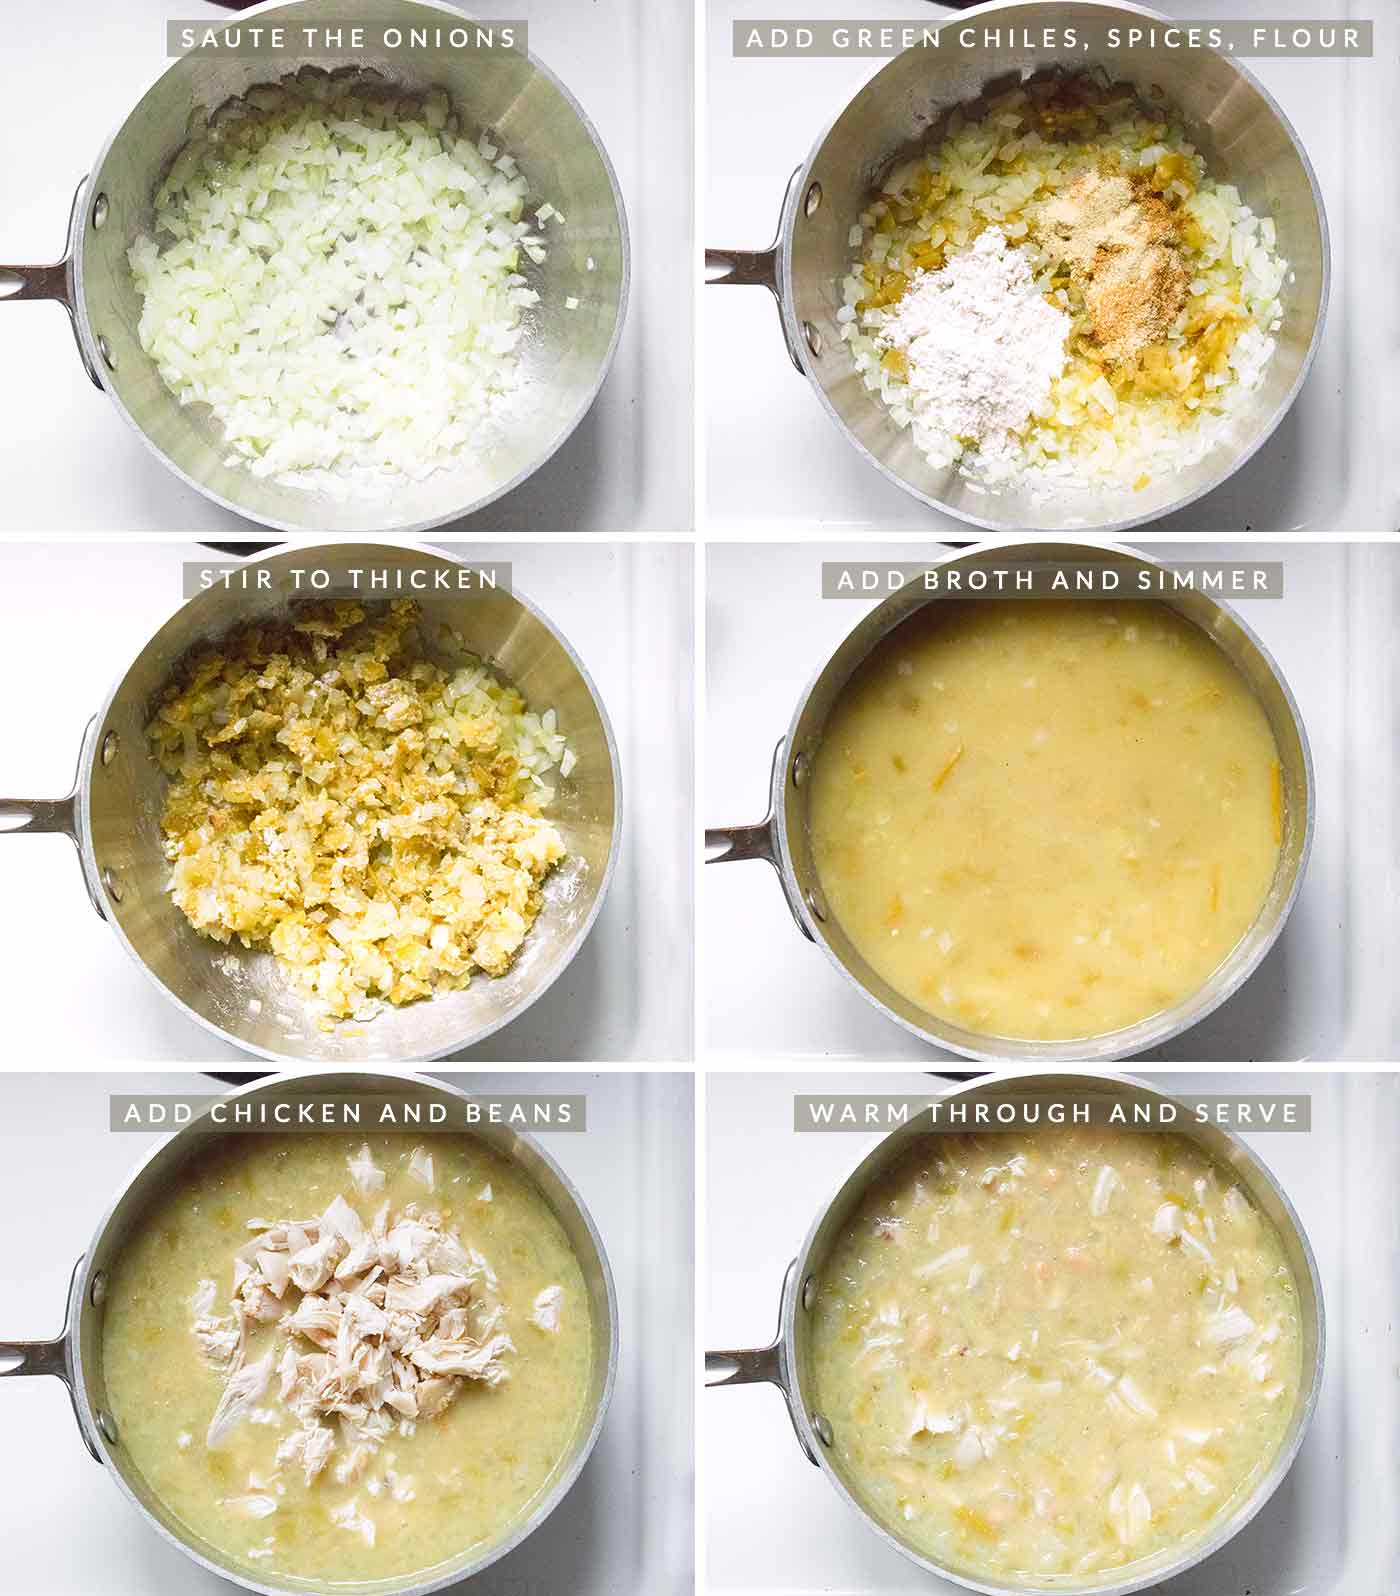 Steps for preparing quick and easy White Chicken Chili